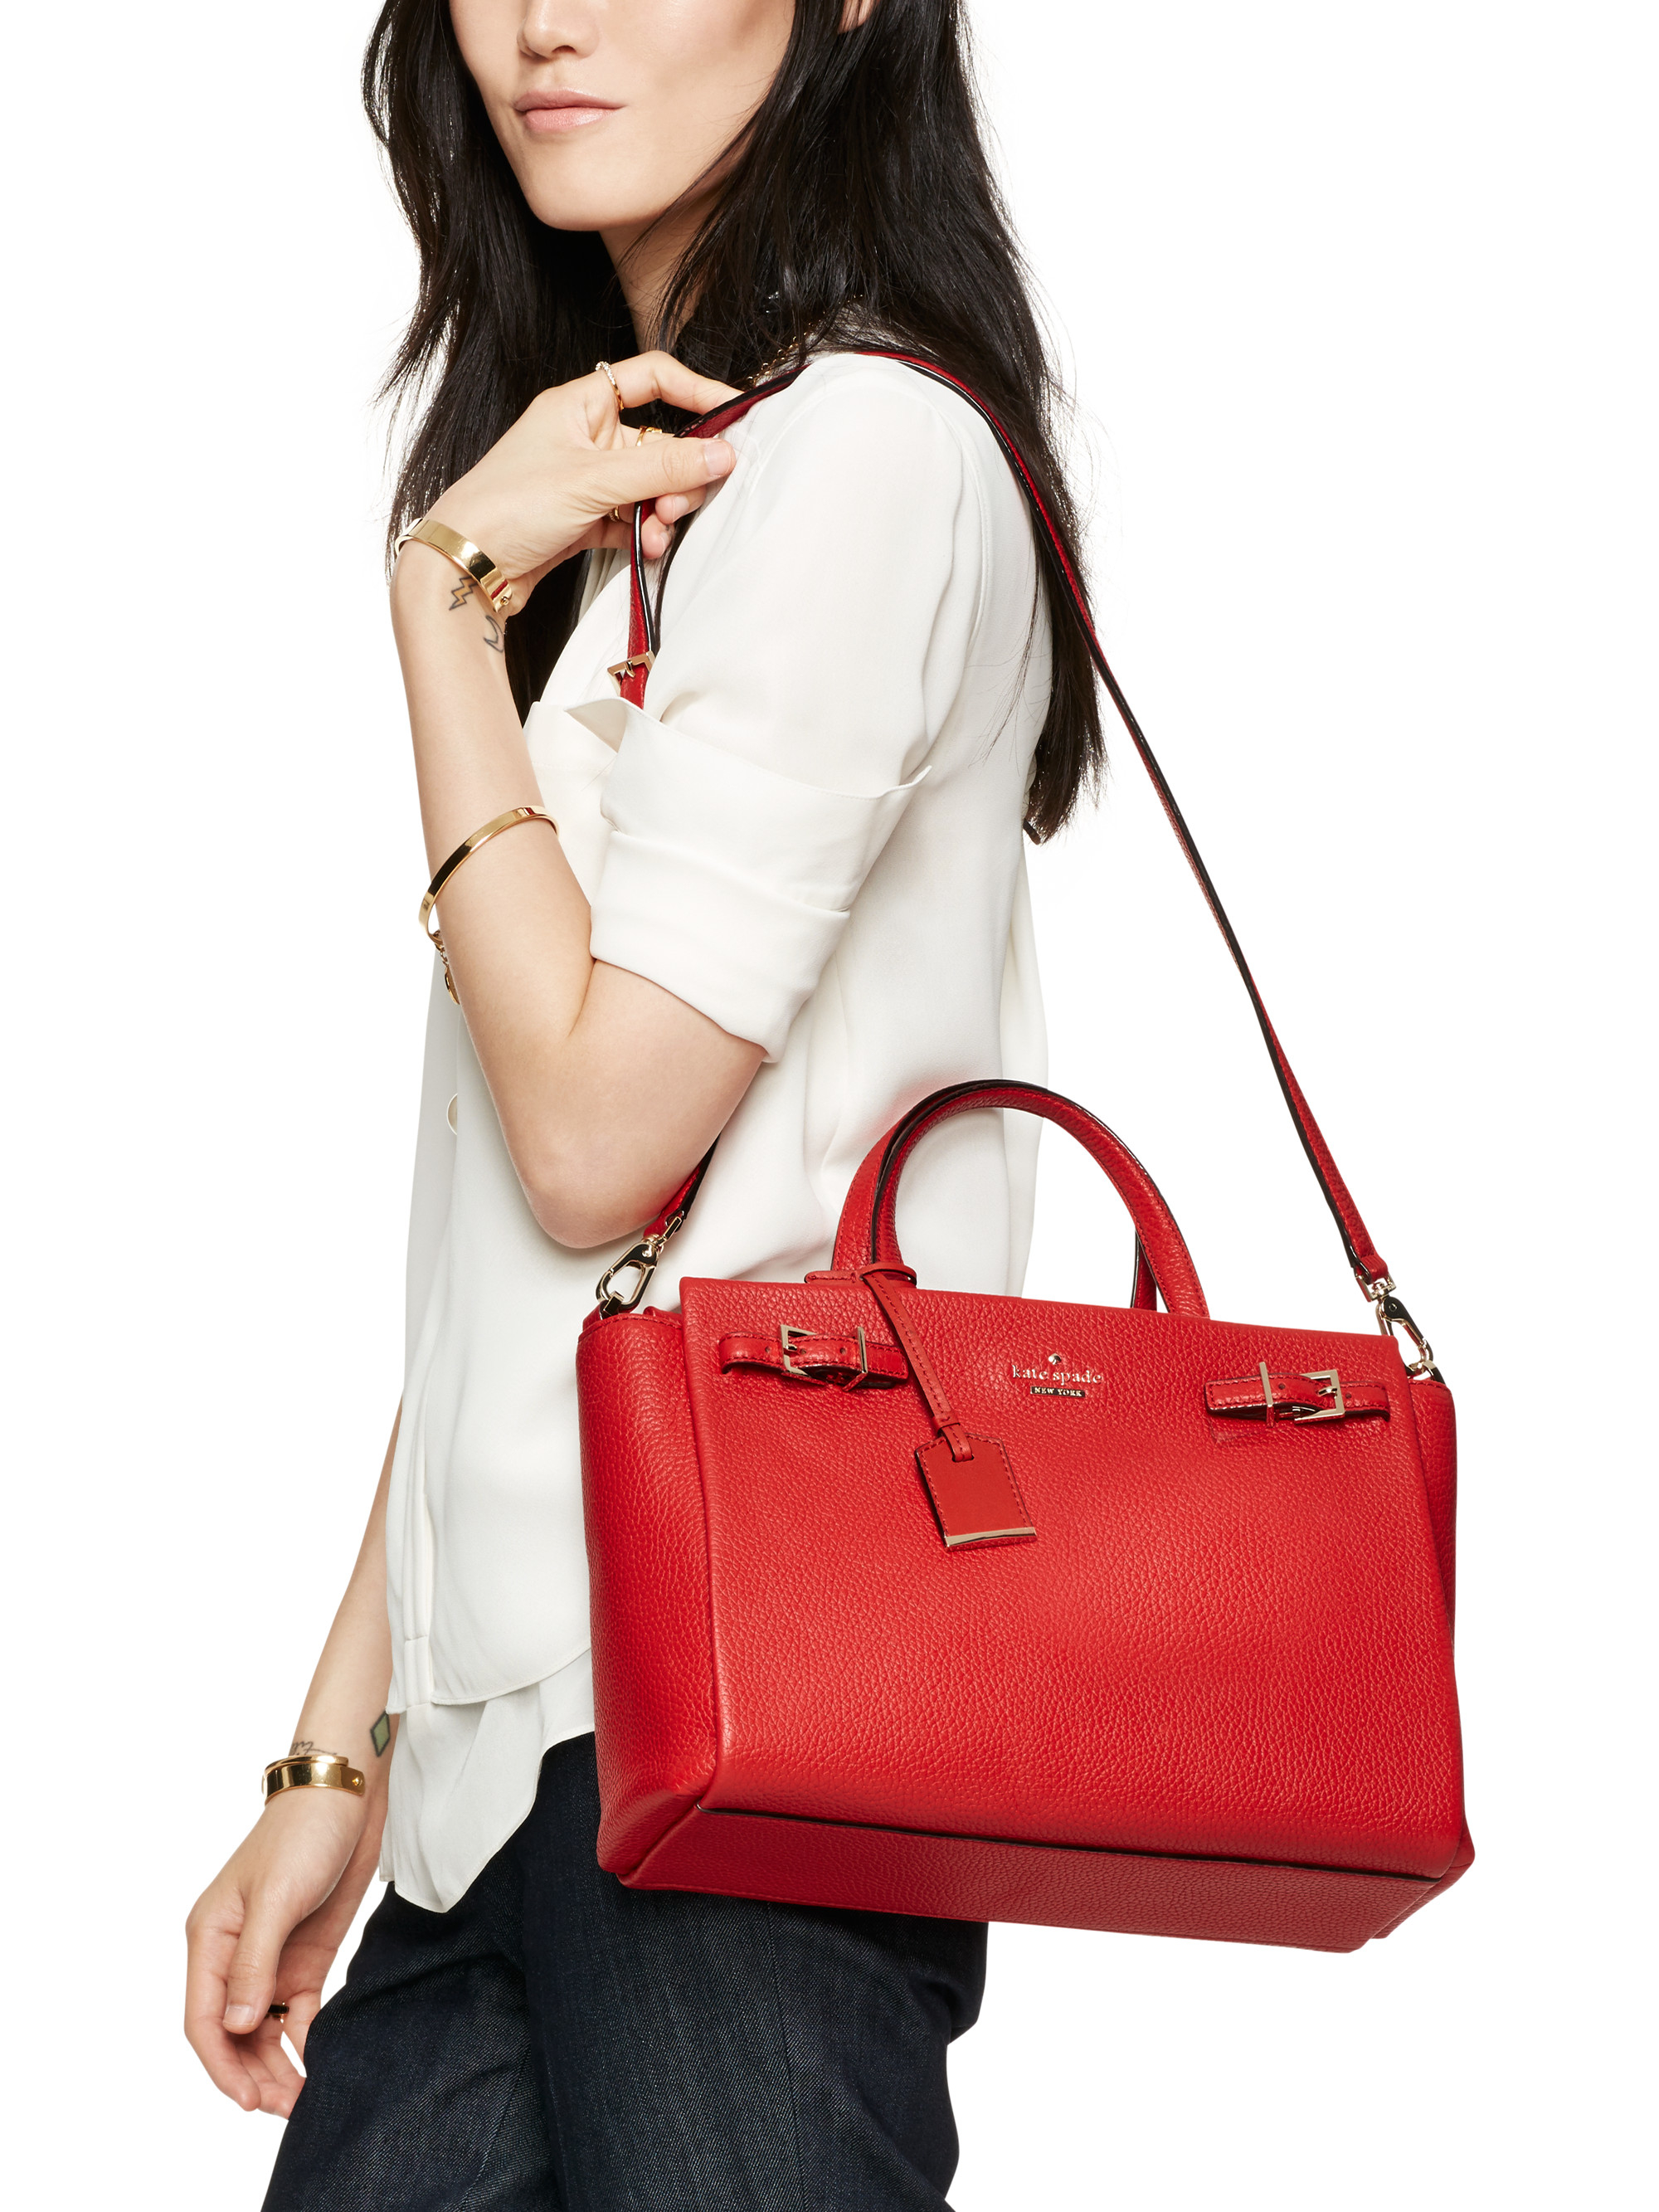 kate-spade-new-york-cherry-tomato-holden-street-lanie-red-product-1-659301096-normal